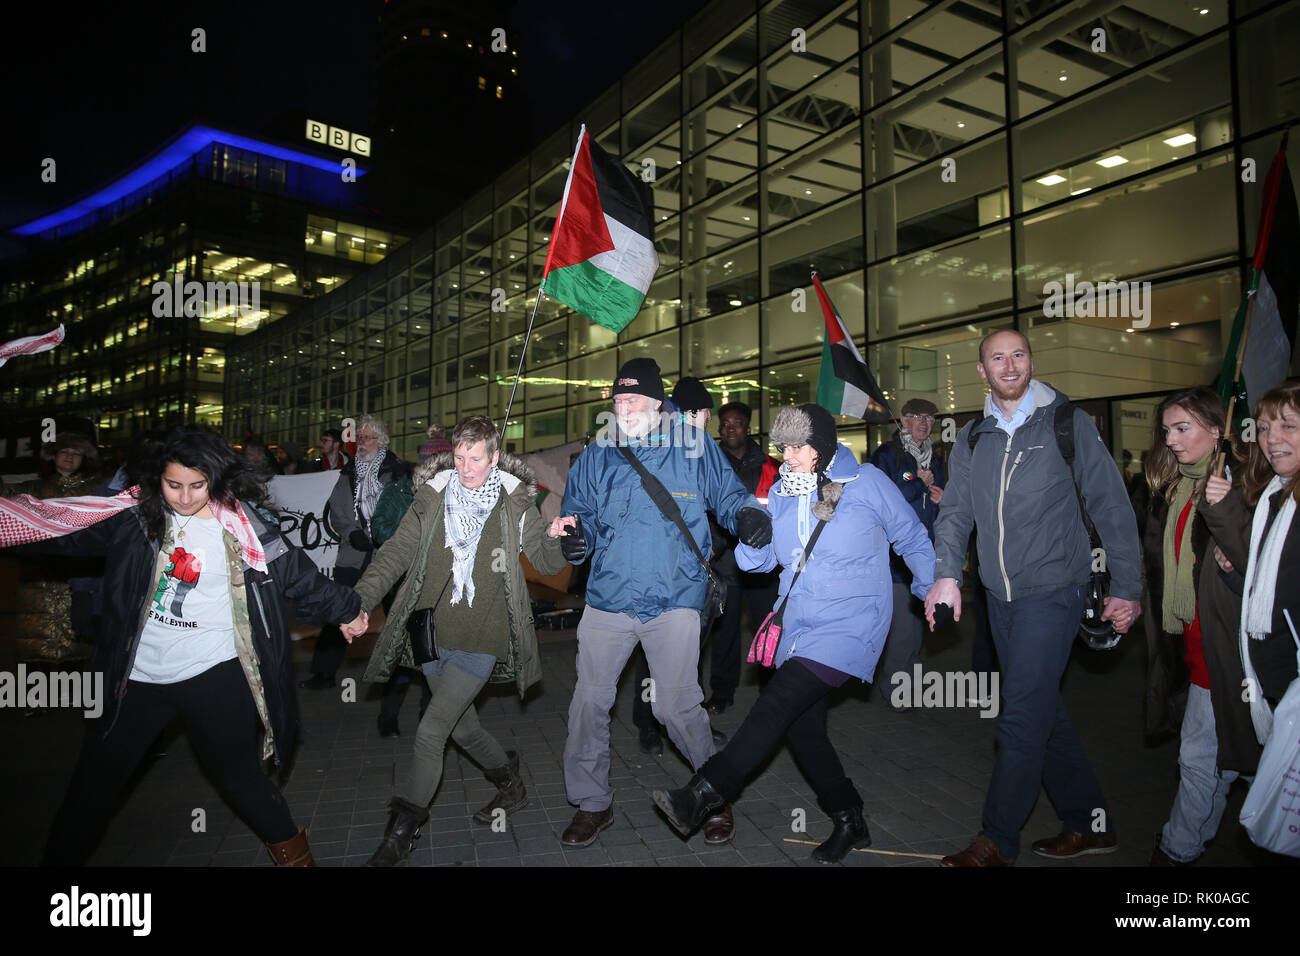 Salford, Greater Manchester, UK. 8th Feb 2019. Pro Palestinian campaigners dancing outside the BBC as an audience gathers for the live filming of 'Eurovision you decide'.  Eurovision 2019 will take place in Israel and pro Israeli's also gathered outside the studios  to counter protest  those in support of Palestine who are calling on the BBC to withdraw from the 2019 Eurovision song contest.   BBC, Media City, Salford, UK, 8th February 2019 Credit: Barbara Cook/Alamy Live News - Stock Image